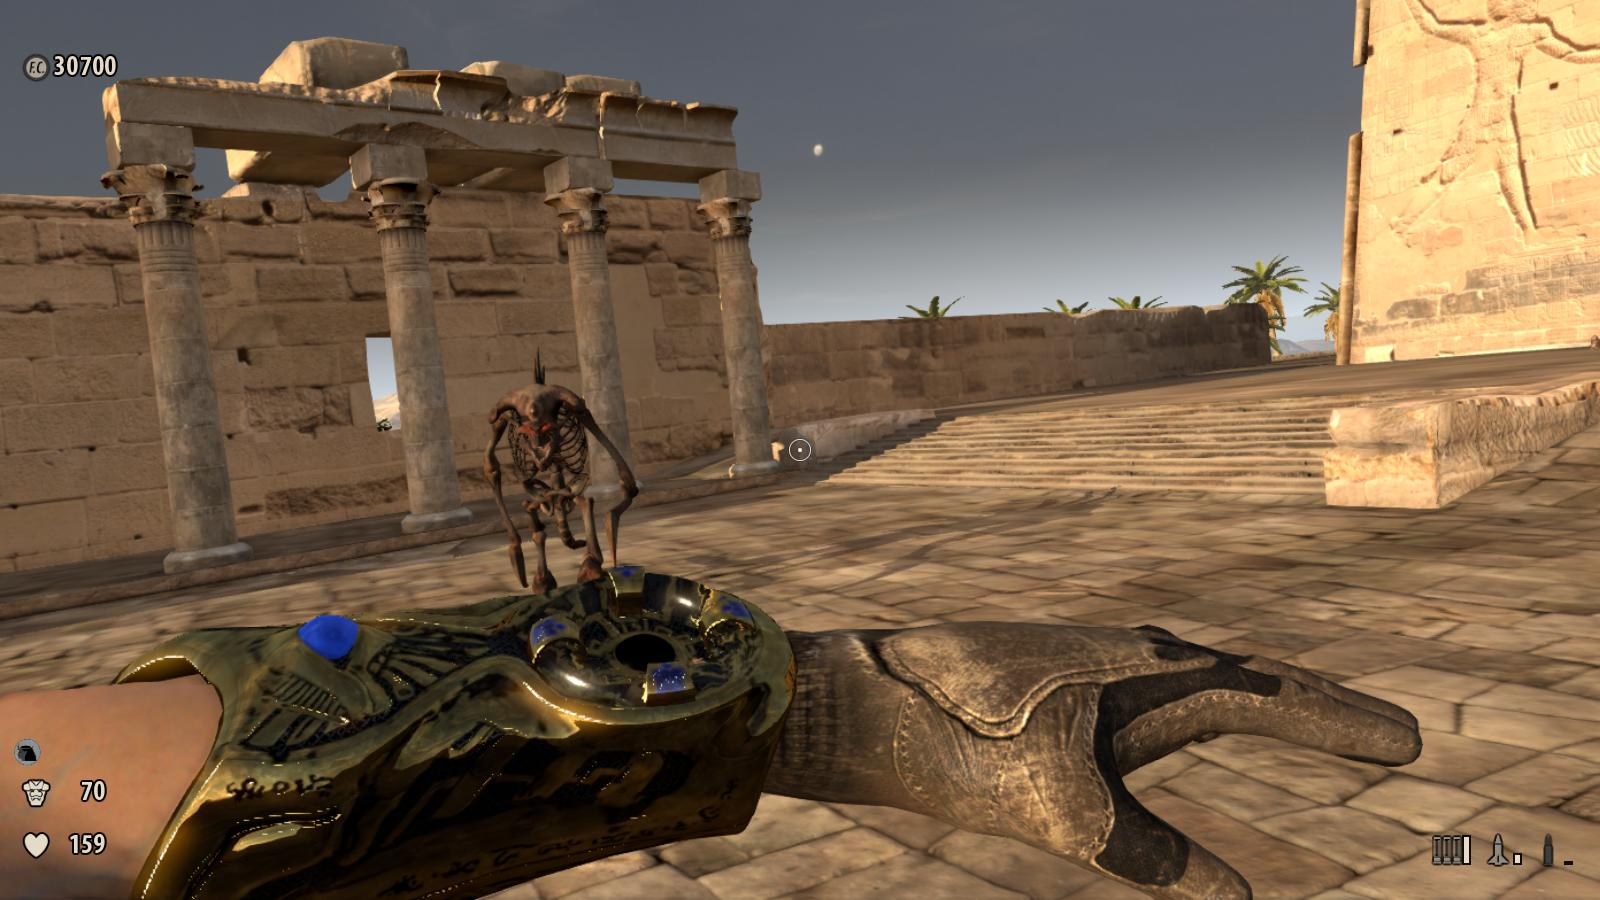 Serious Sam 3 BFE PC Full Castellano [Textos]